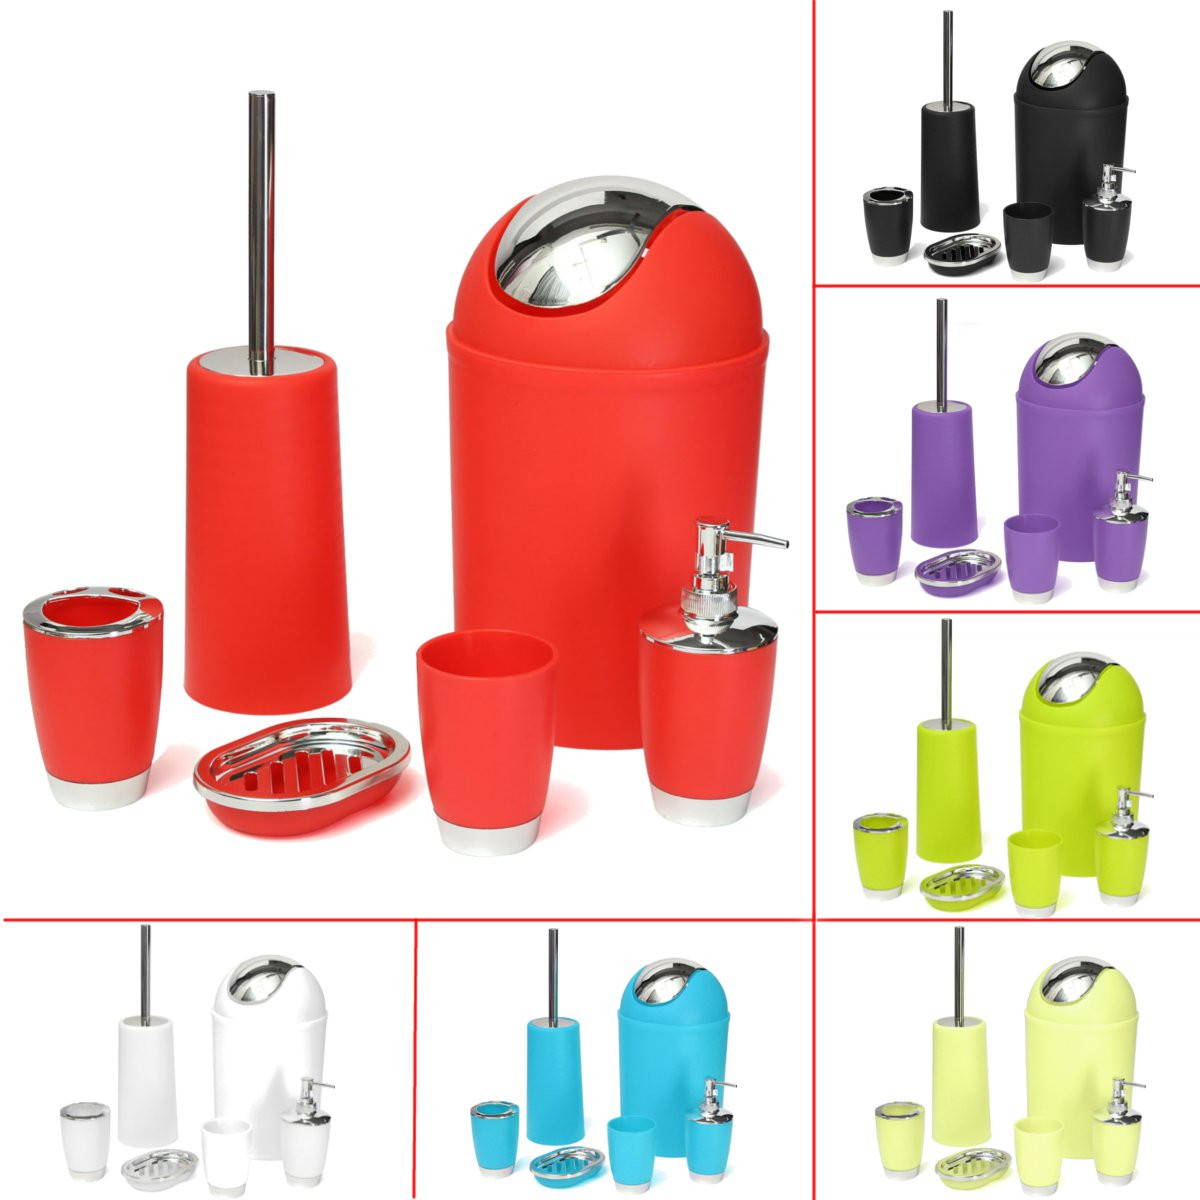 6pcs set bathroom accessory bin soap dish dispenser tumbler toothbrush holder purple color